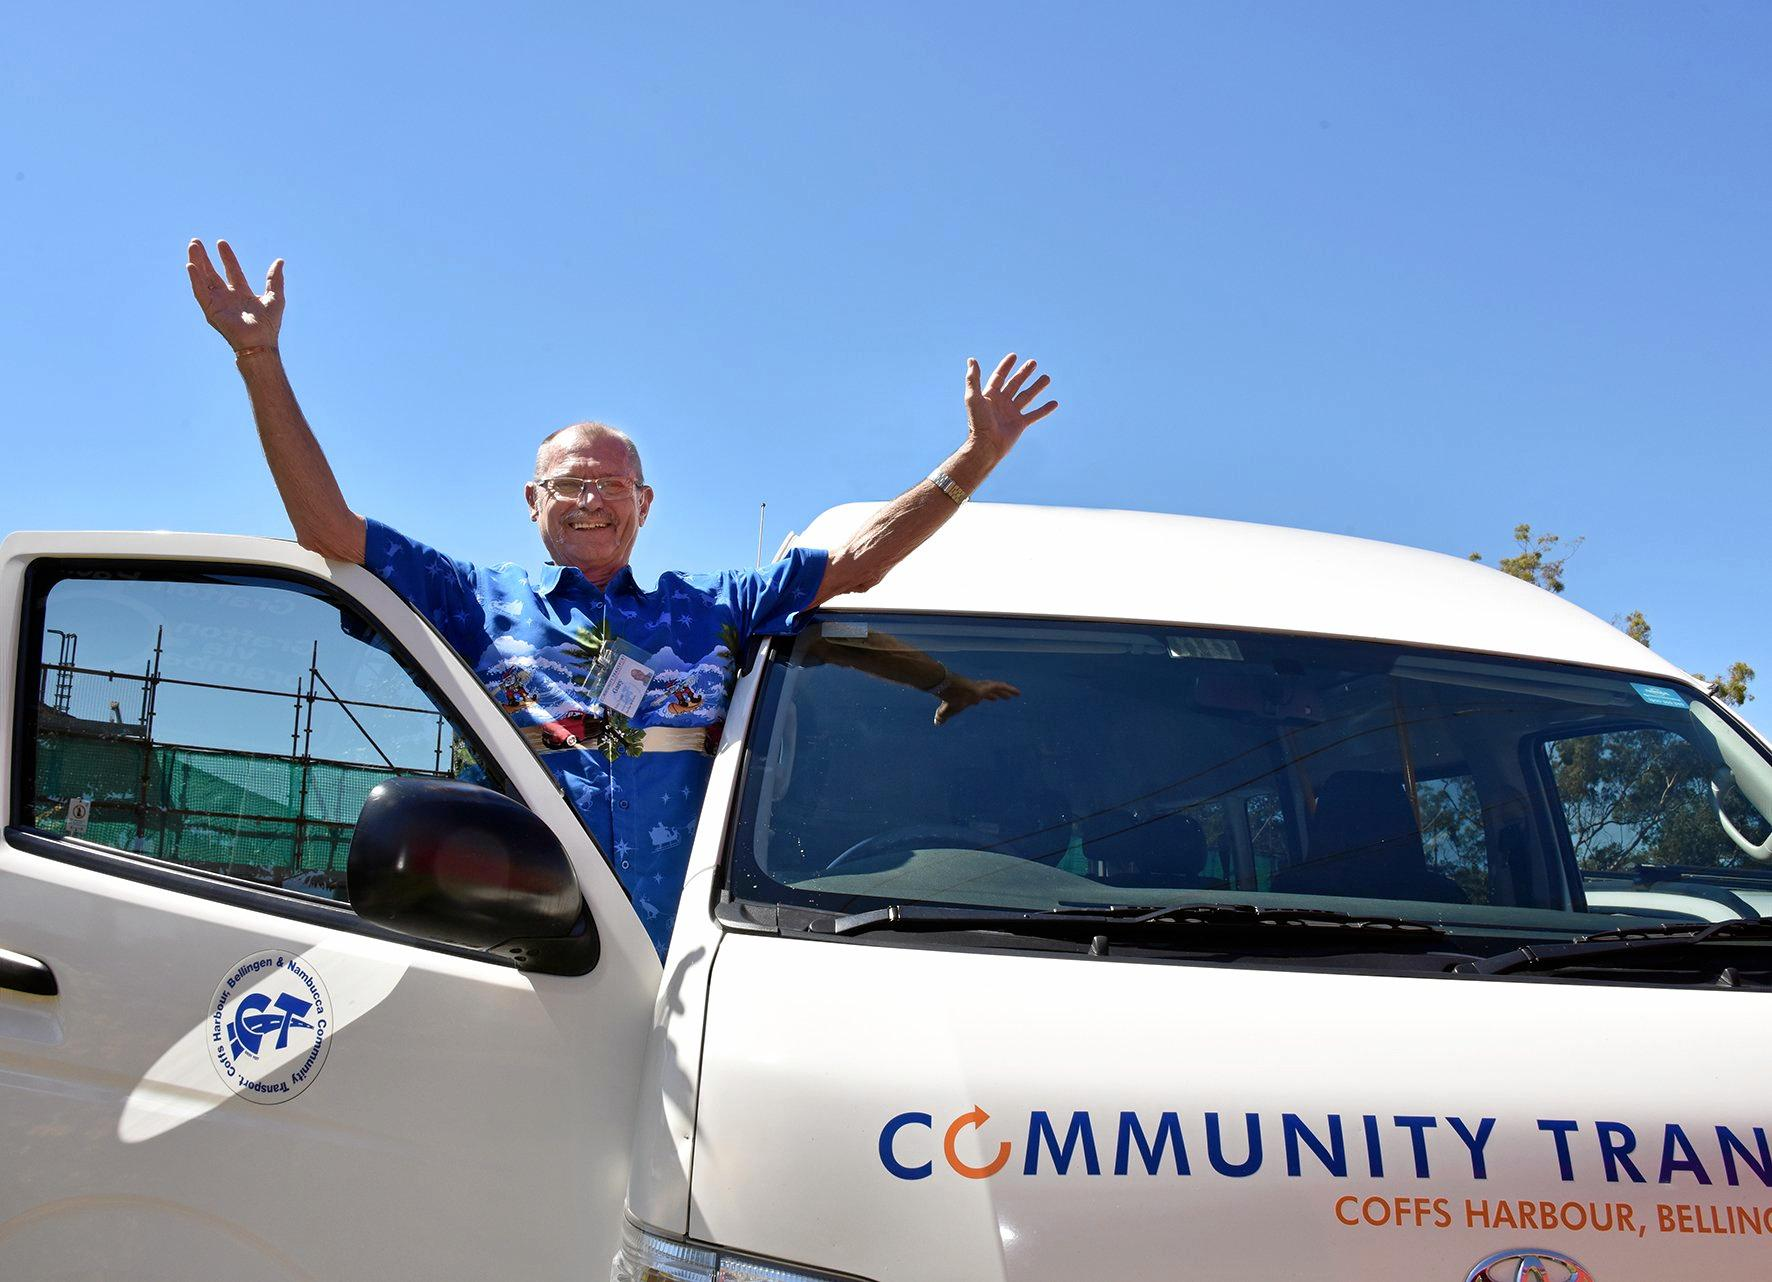 GET ONBOARD: Gary Murrell, volunteer with Community Transport is encouraging others to join the happy team.